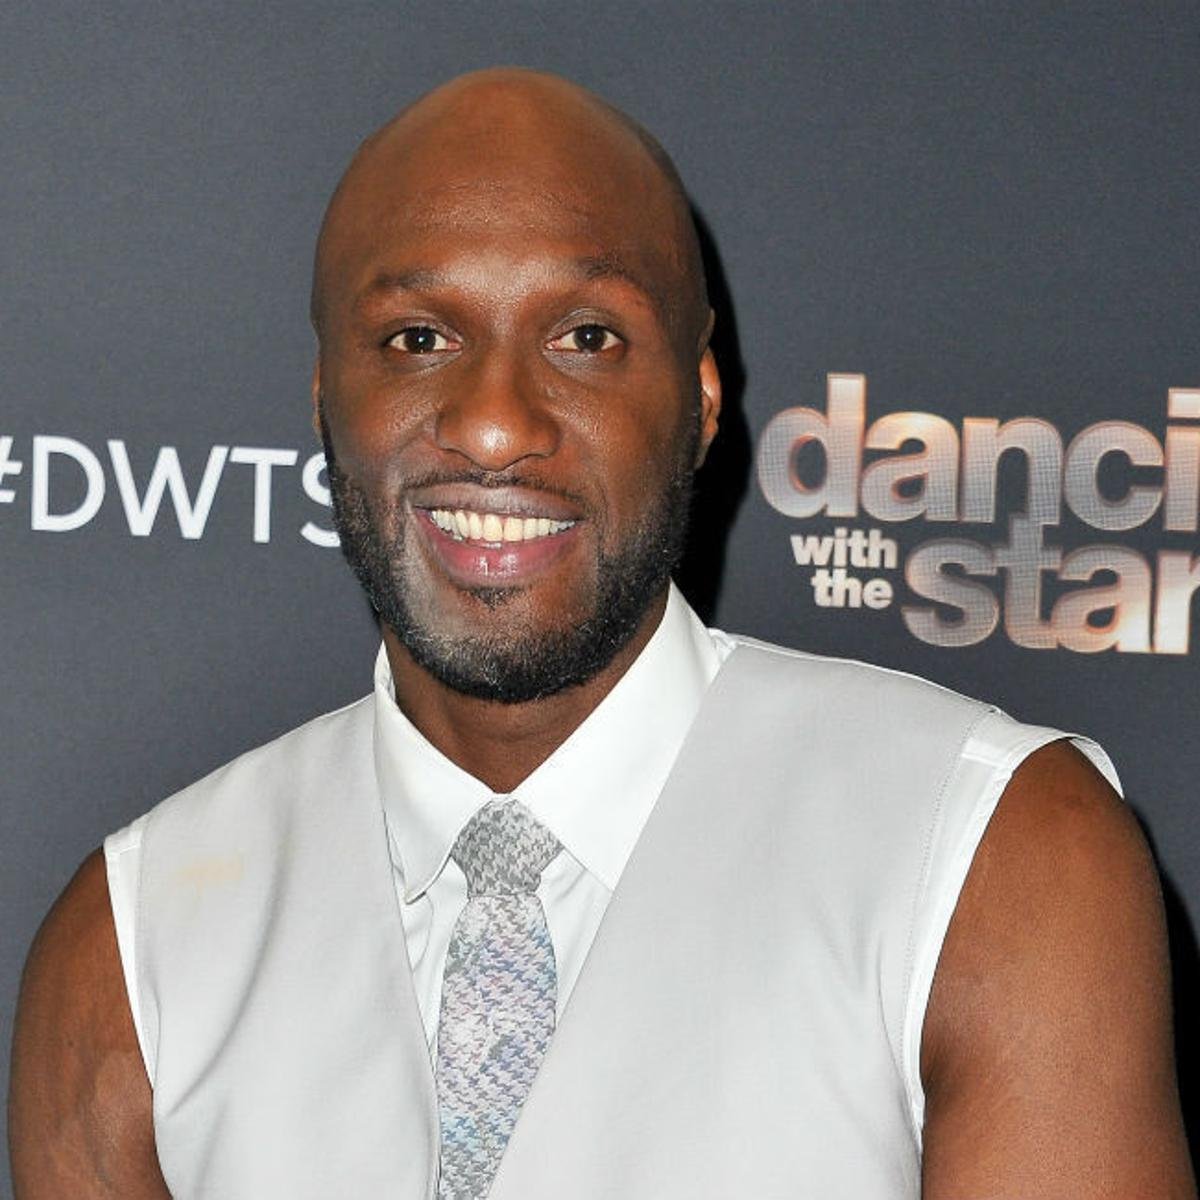 Lamar Odom Has To Pay His Ex, Lisa Morales Almost 0k In Child Support